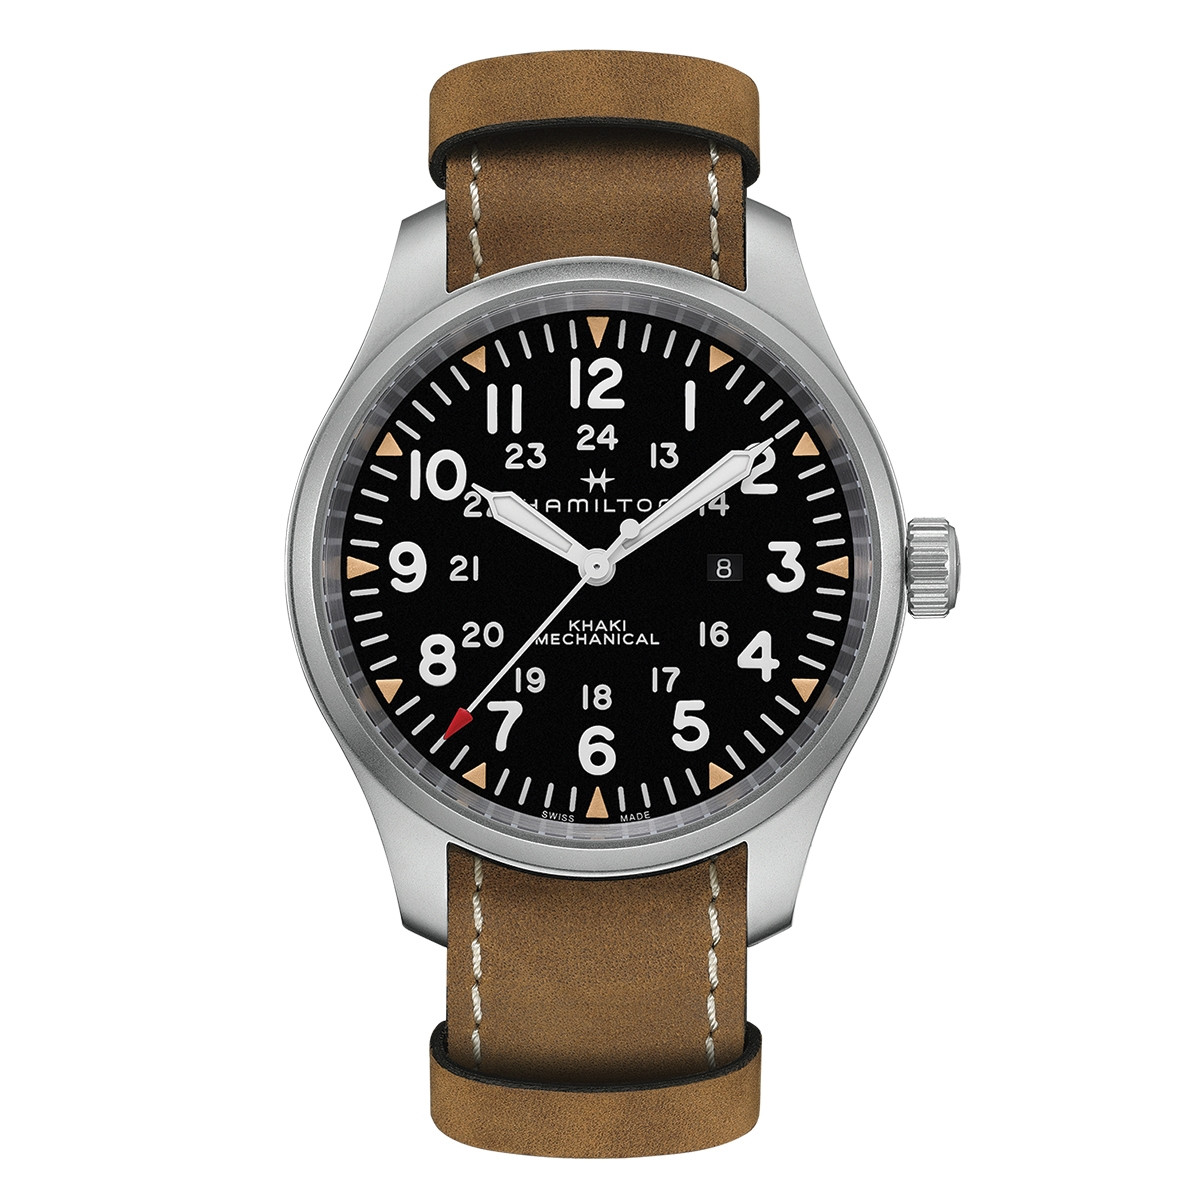 New Man's Hamilton Khaki Field Limited Edition